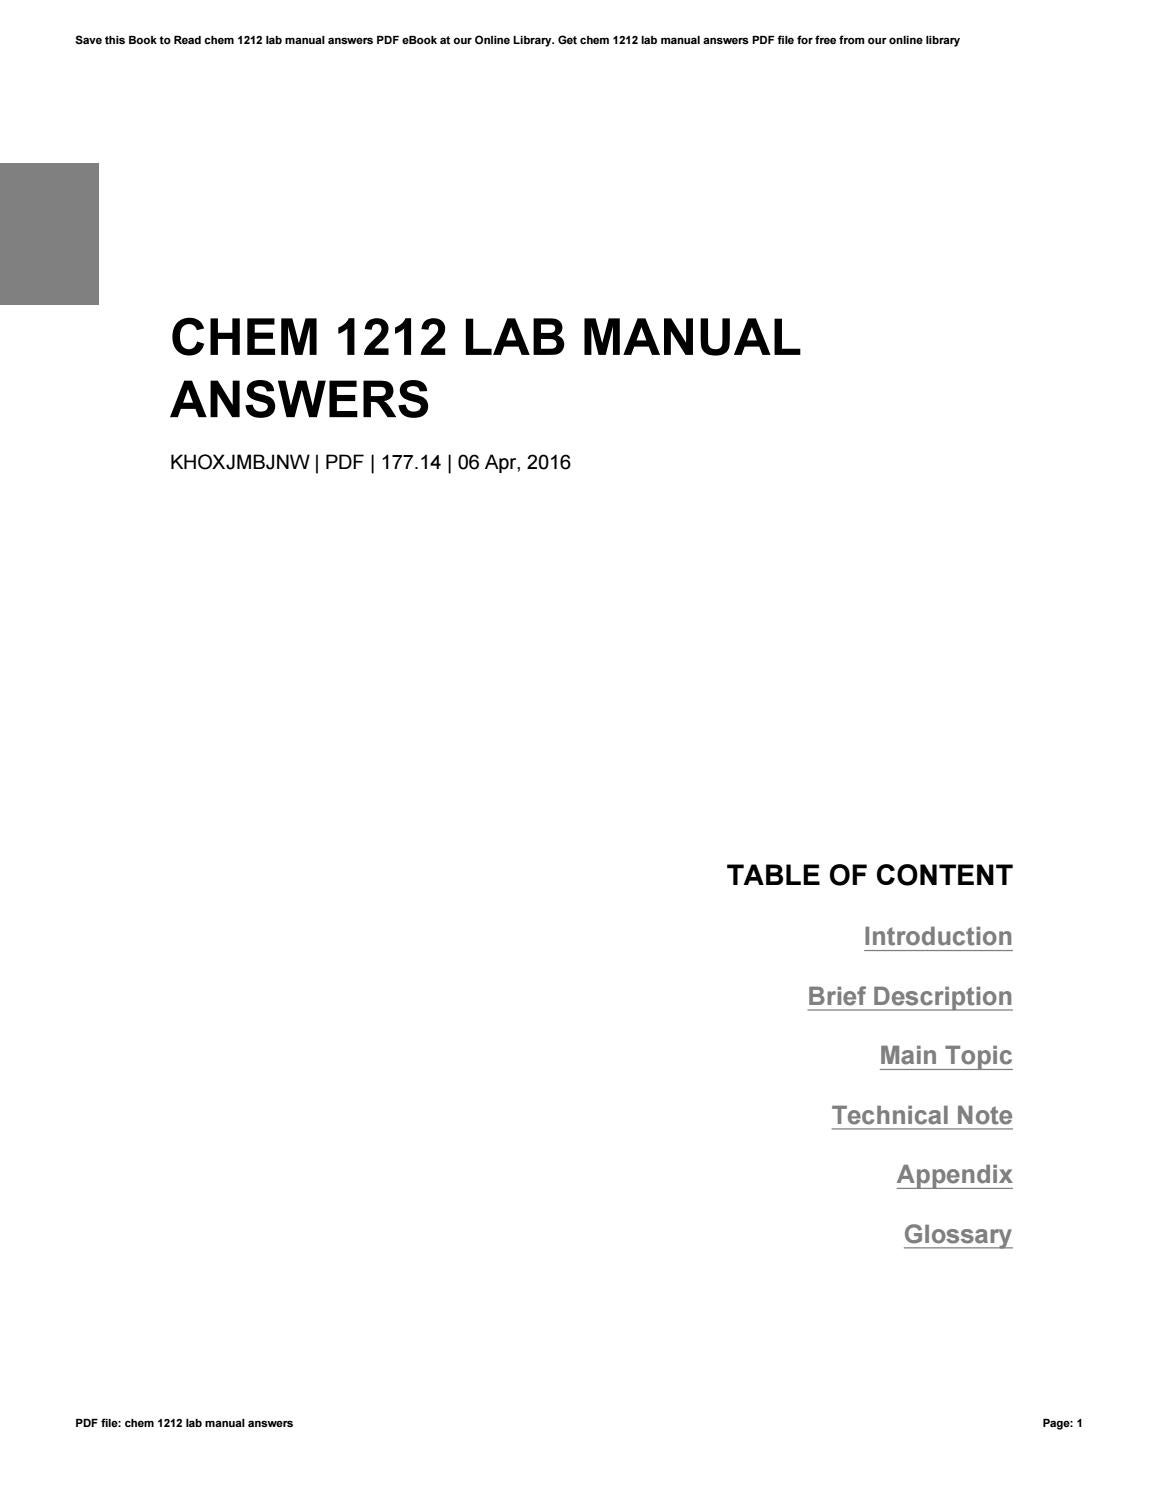 ... answers ebook bitlab solutions Array - auto cad lab manual me2155 ebook  rh auto cad lab manual me2155 ebook topmalawis